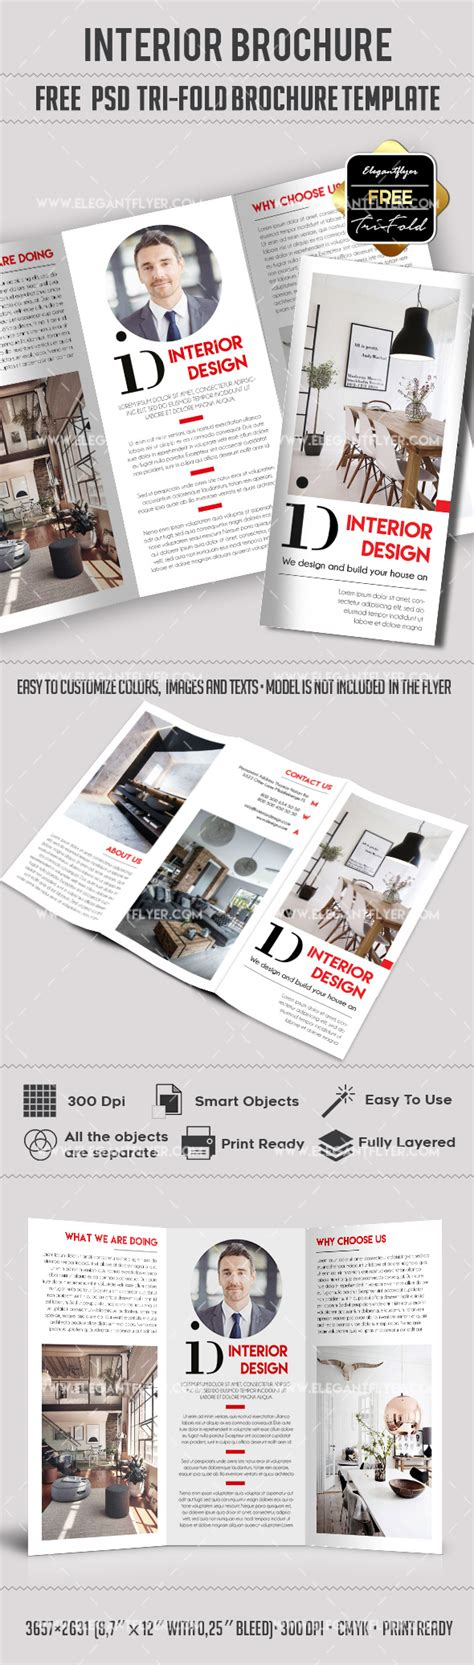 Tri Fold Brochure Template Psd Free by Interior Design Free Tri Fold Brochure By Elegantflyer